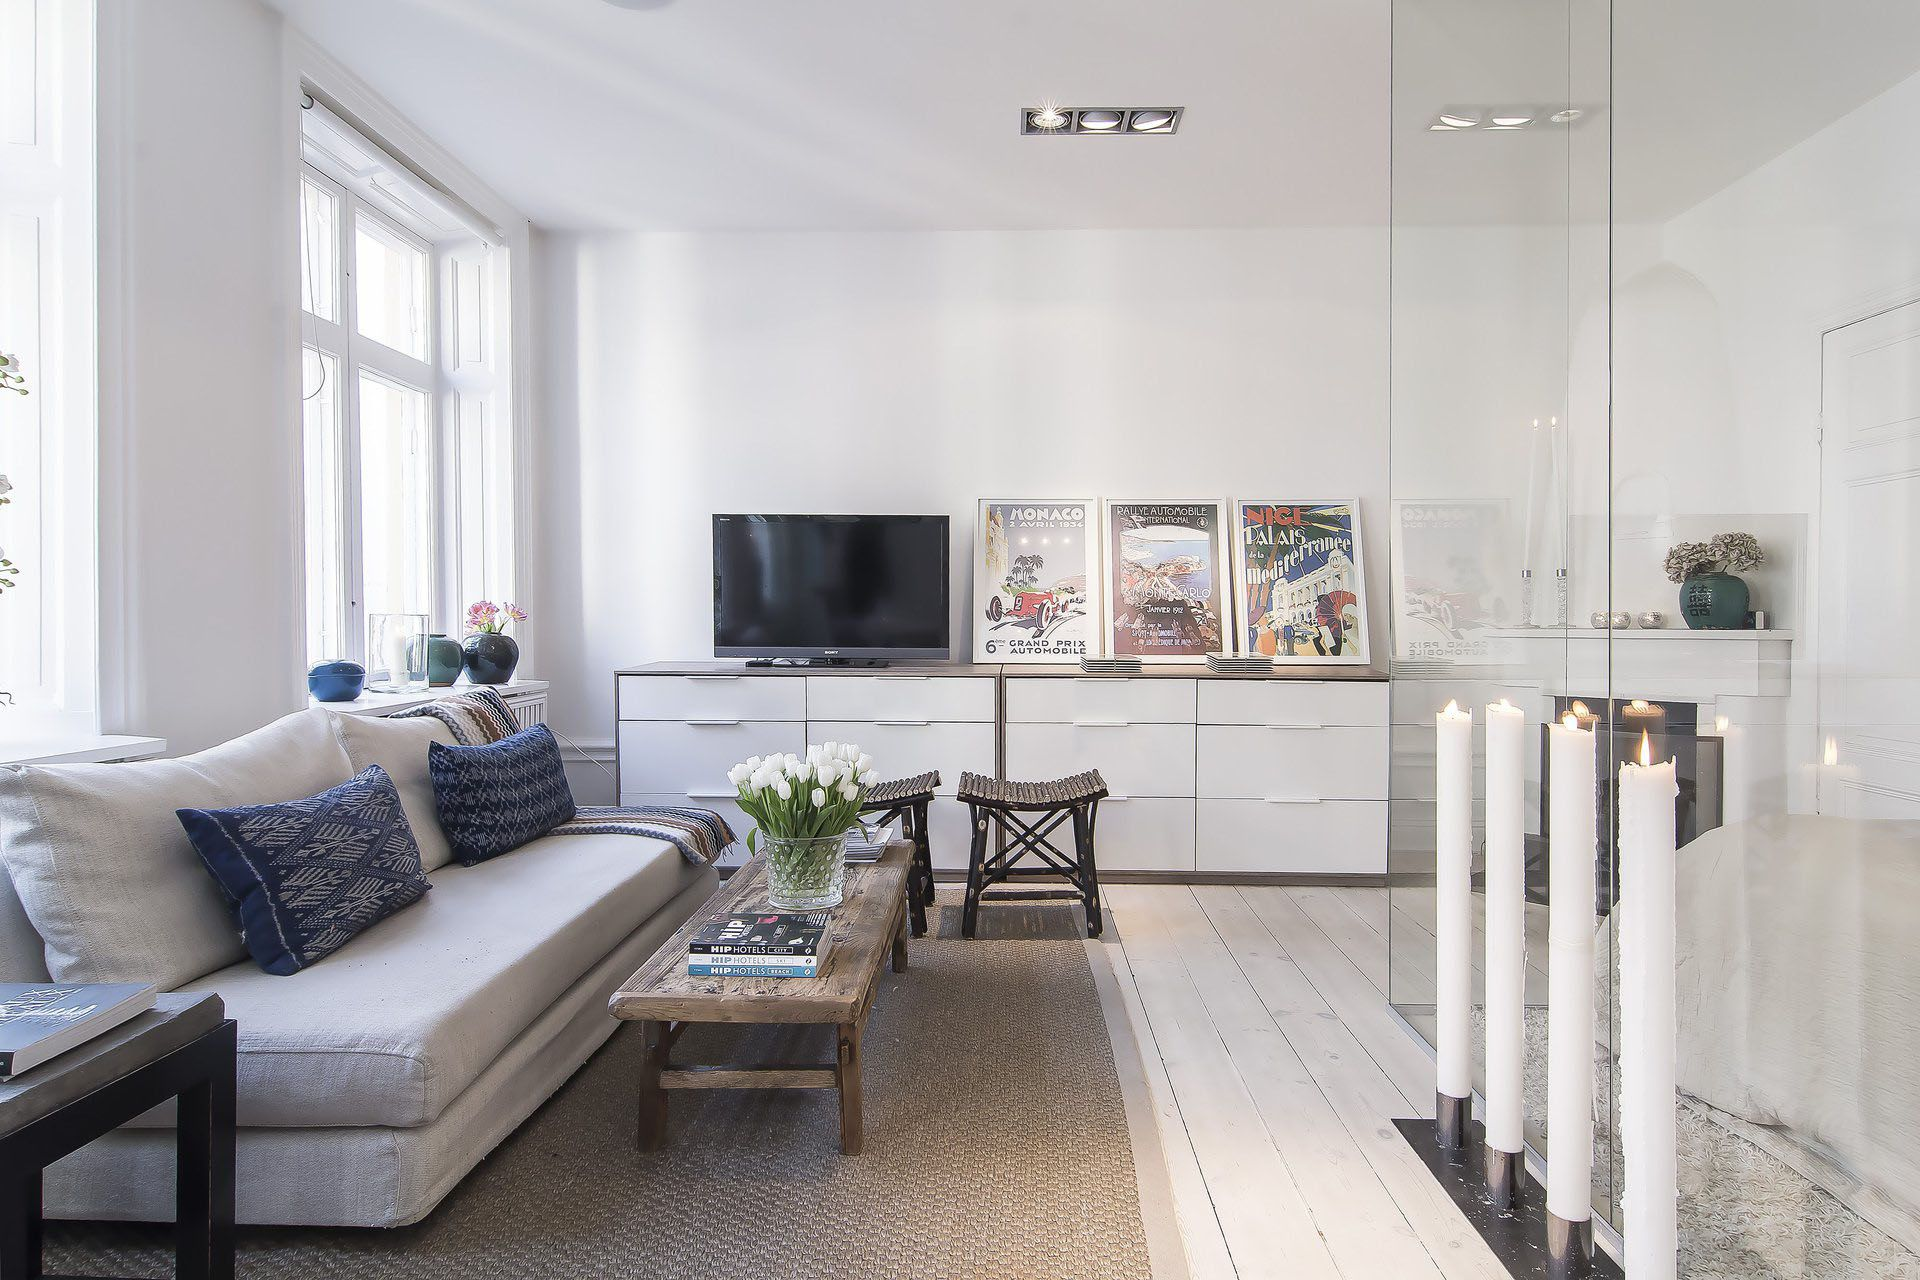 This Small Apartment Is Located In Ostermalm A Large District Central Stockholm Sweden It Measures 366 Square Feet Its Glass Wall Gives The